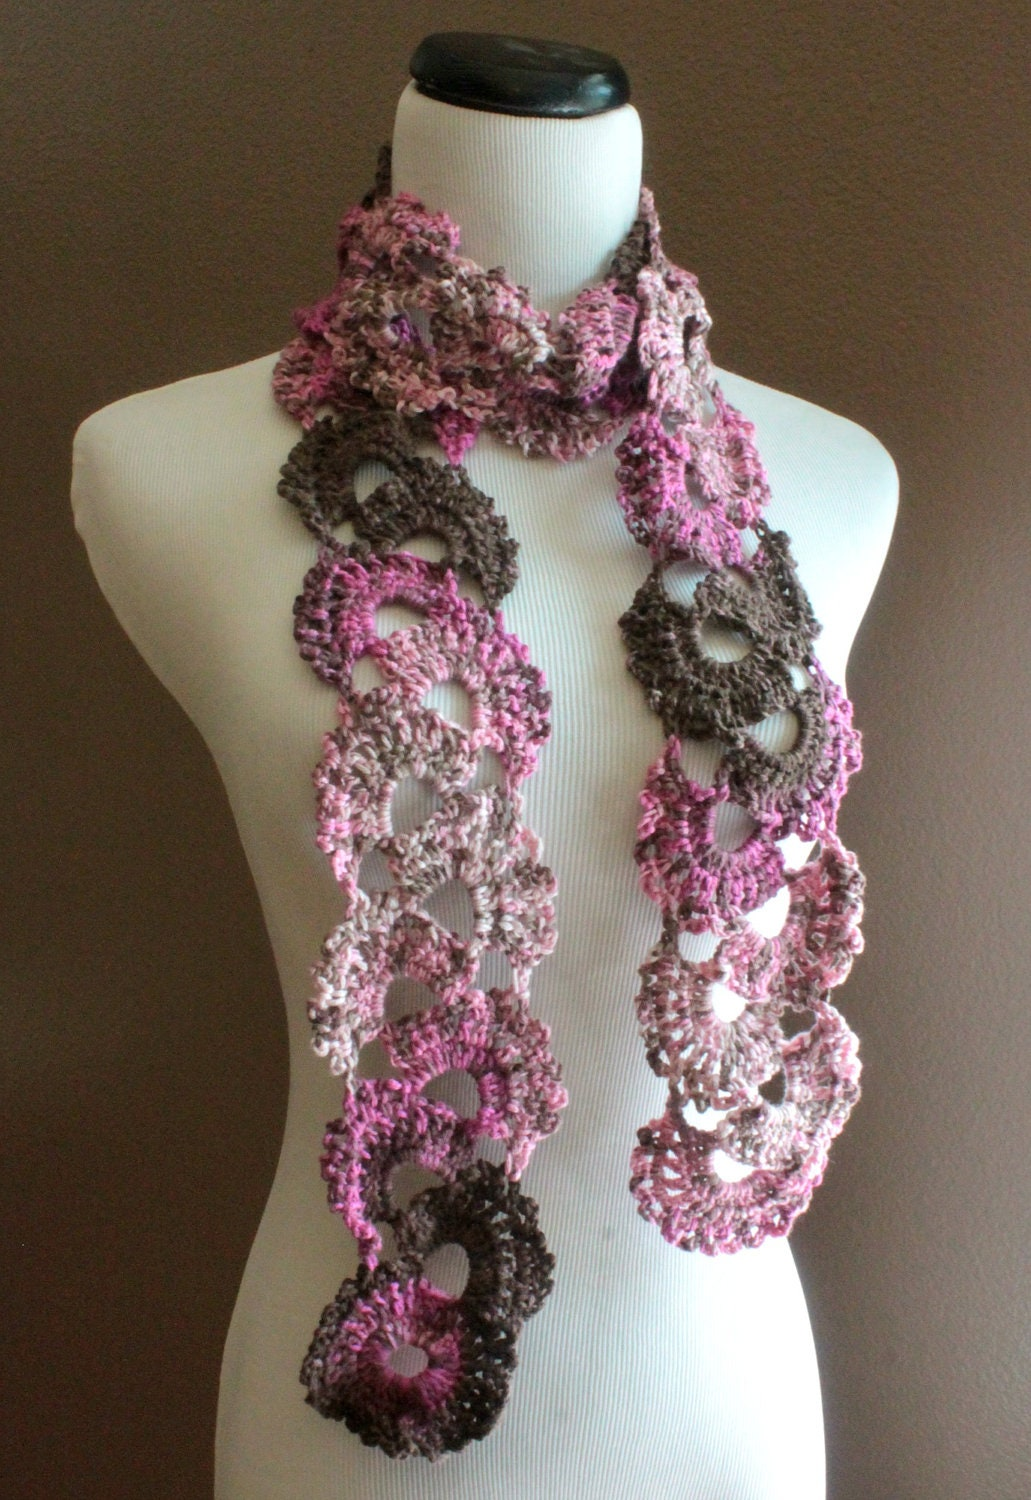 Crochet Scarf Queen Annes Lace Scarf Ombre Scarf Varigated Multicolor ...